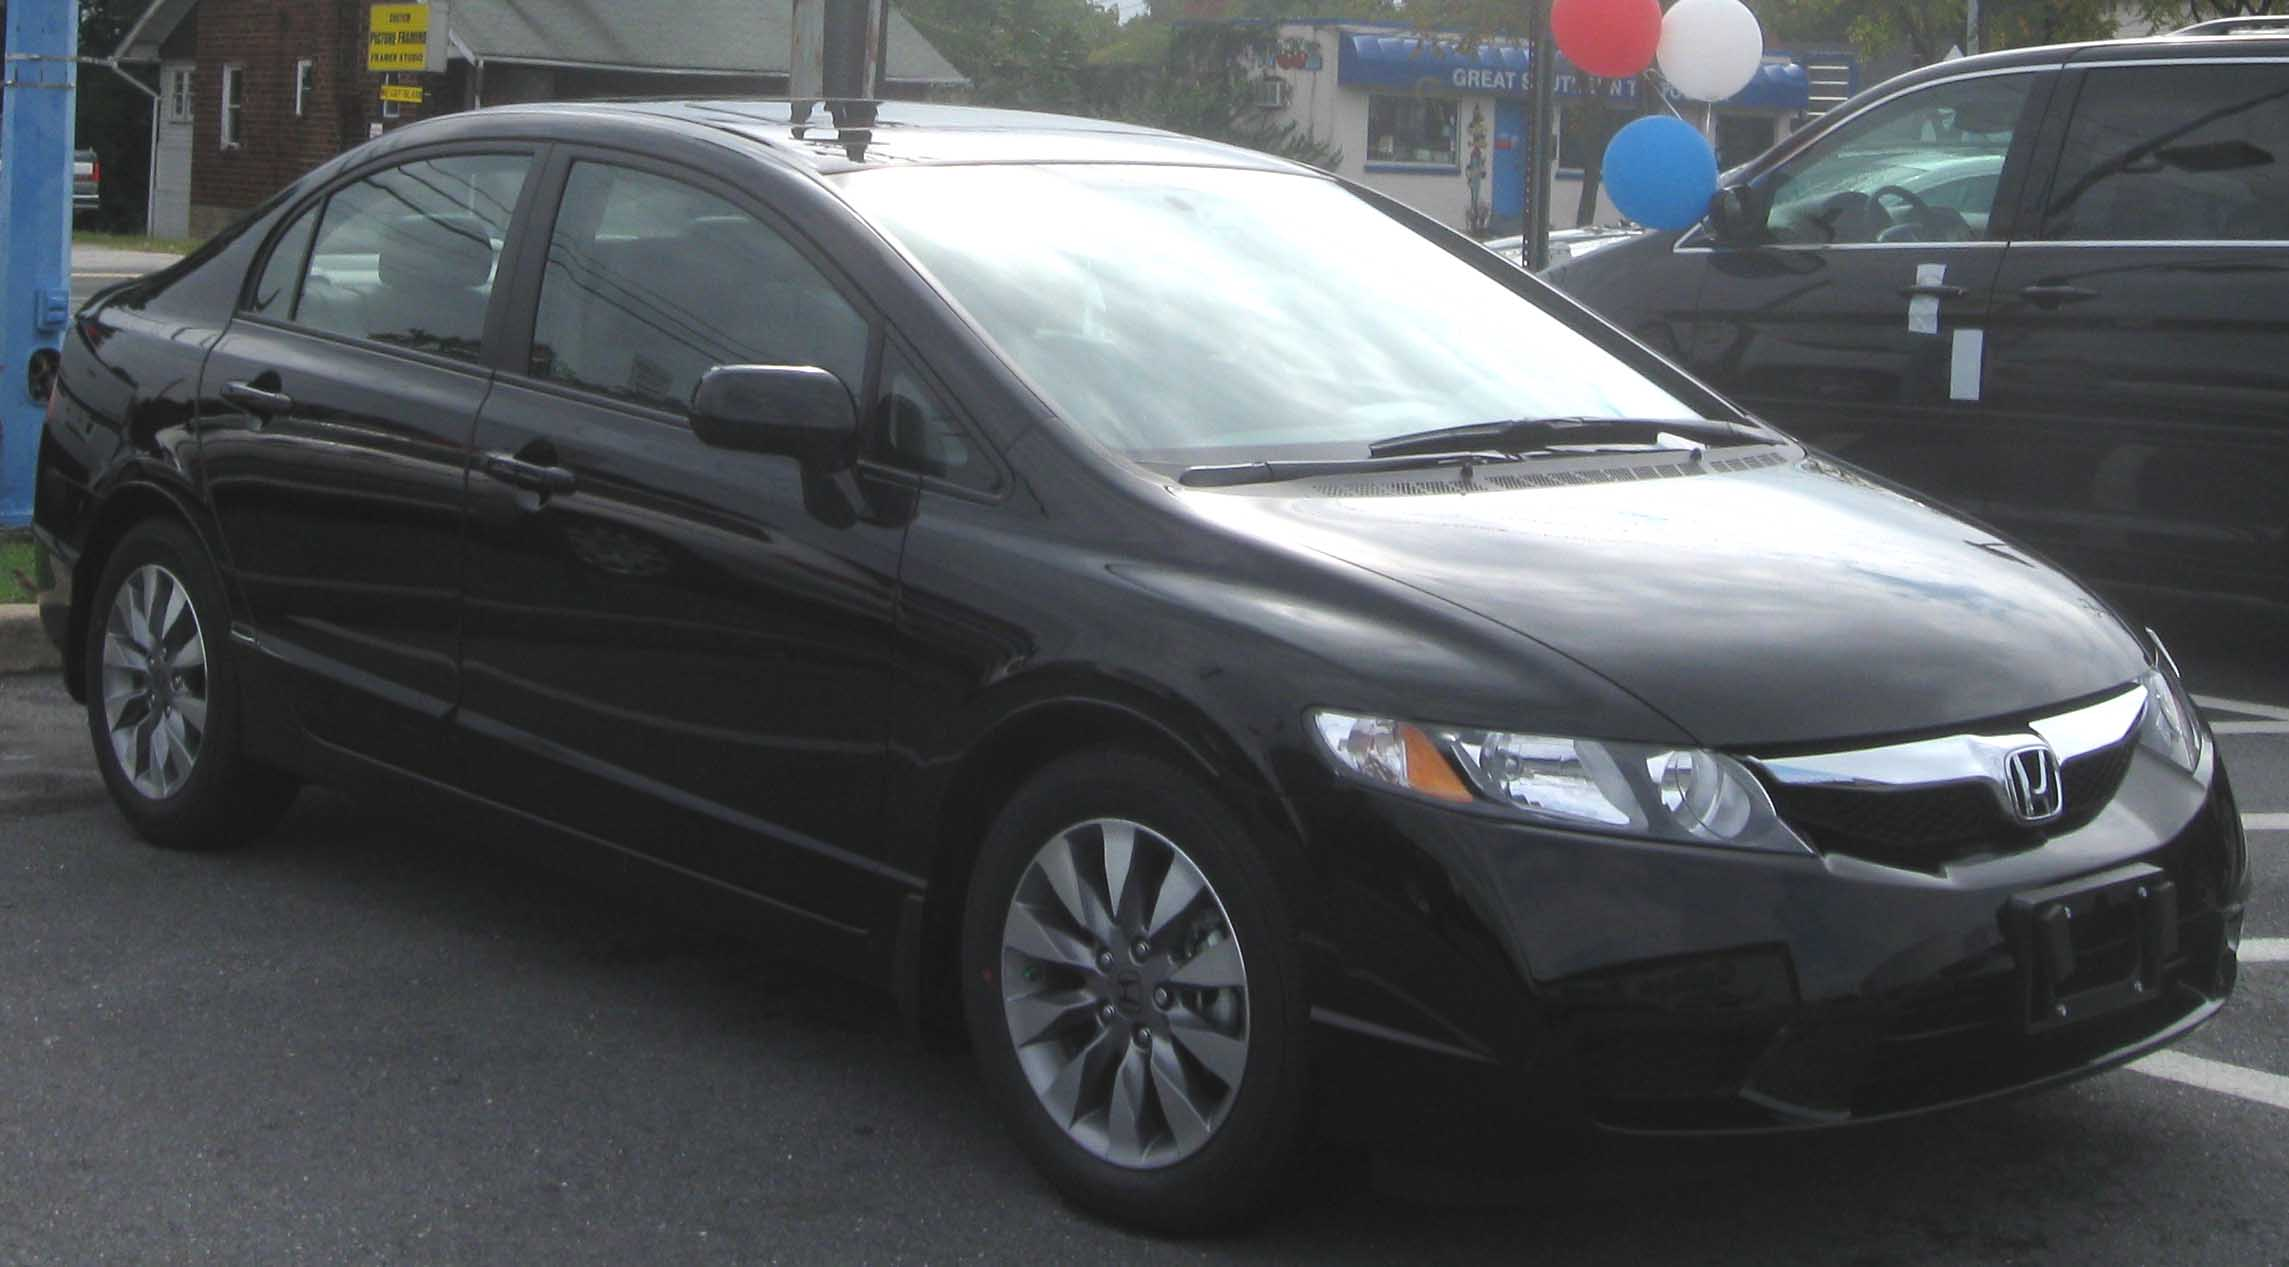 Nice File:2009 Honda Civic EX Sedan